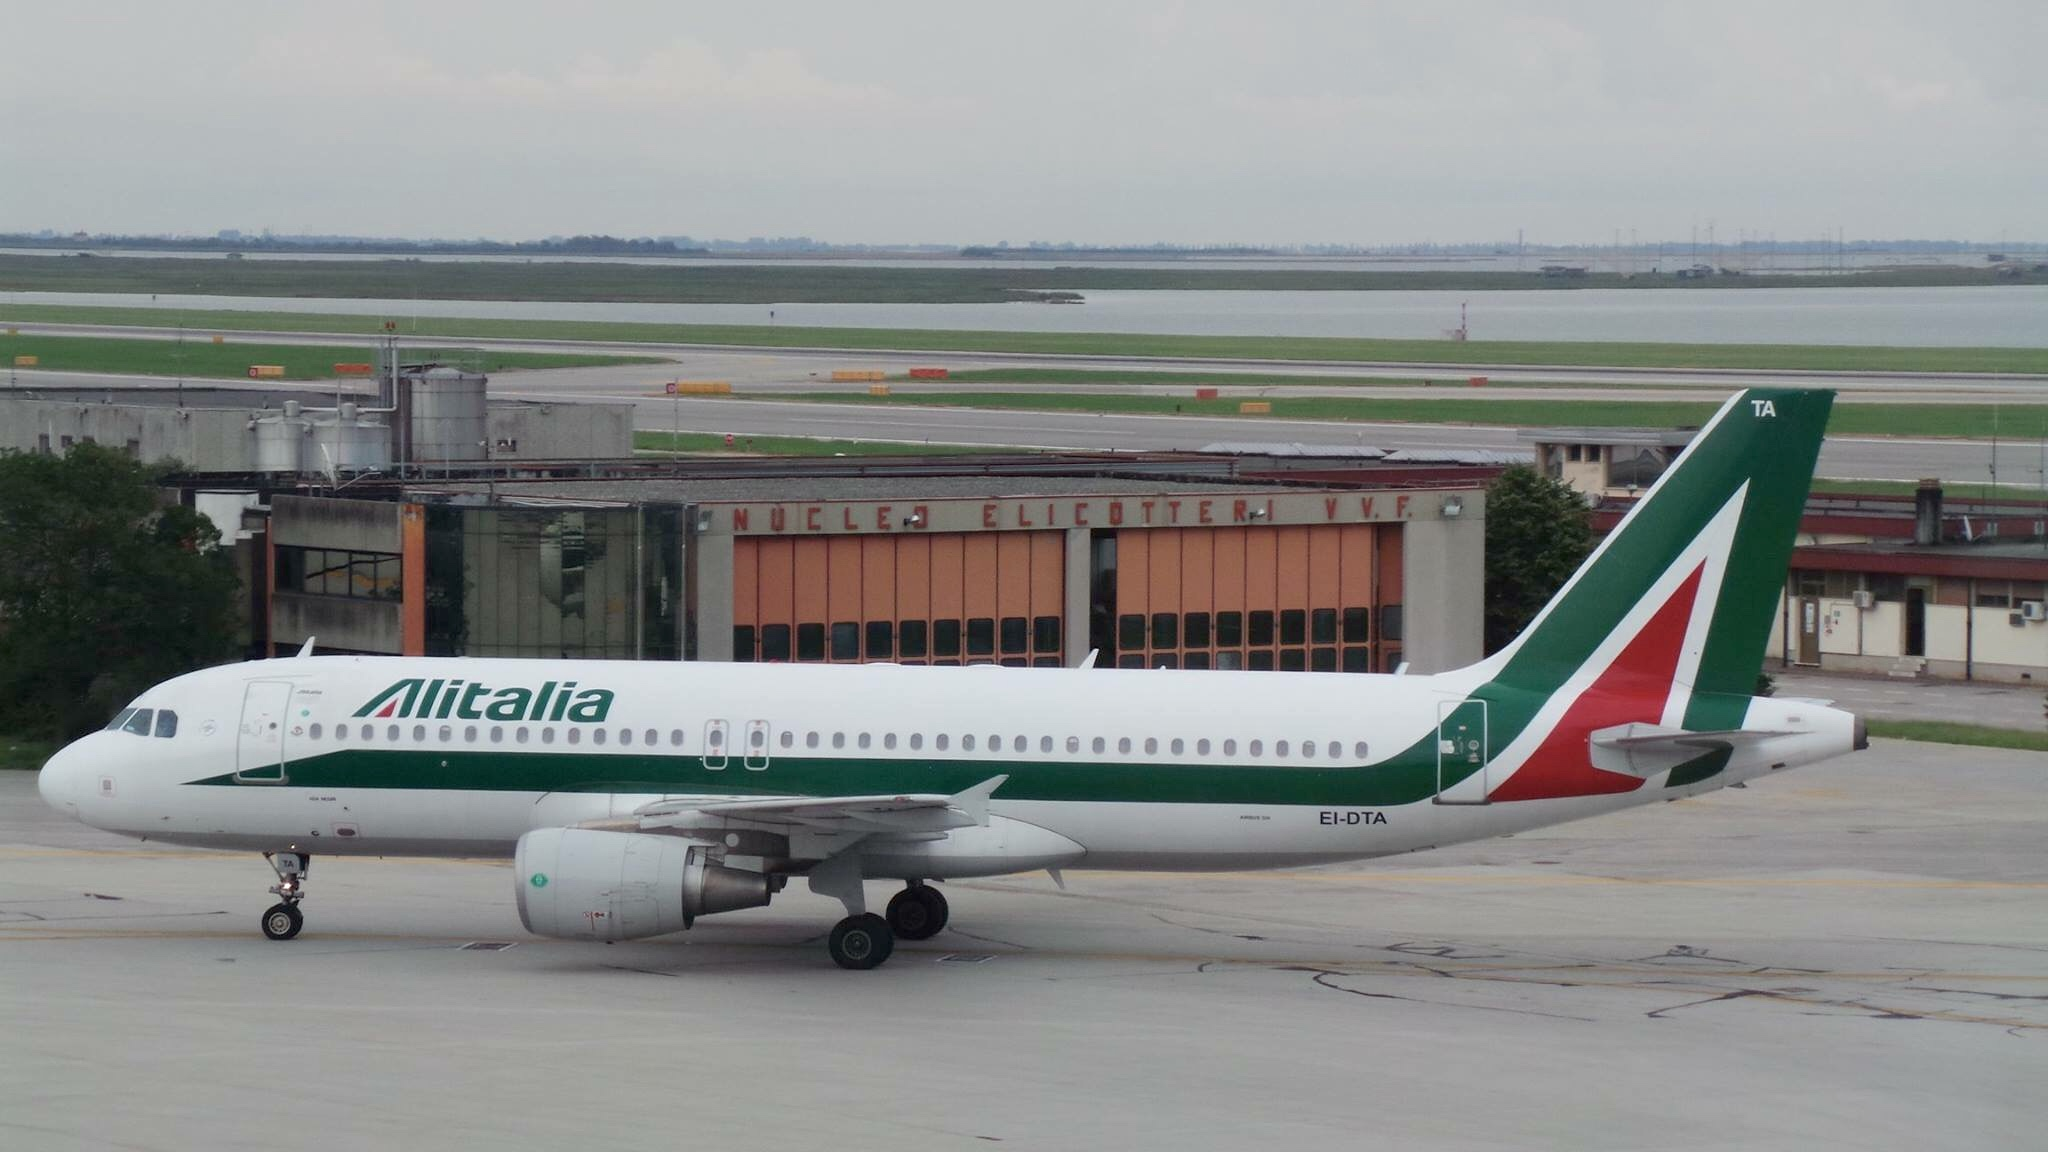 ALITALIA: new livery, new uniforms, new planes for 2015